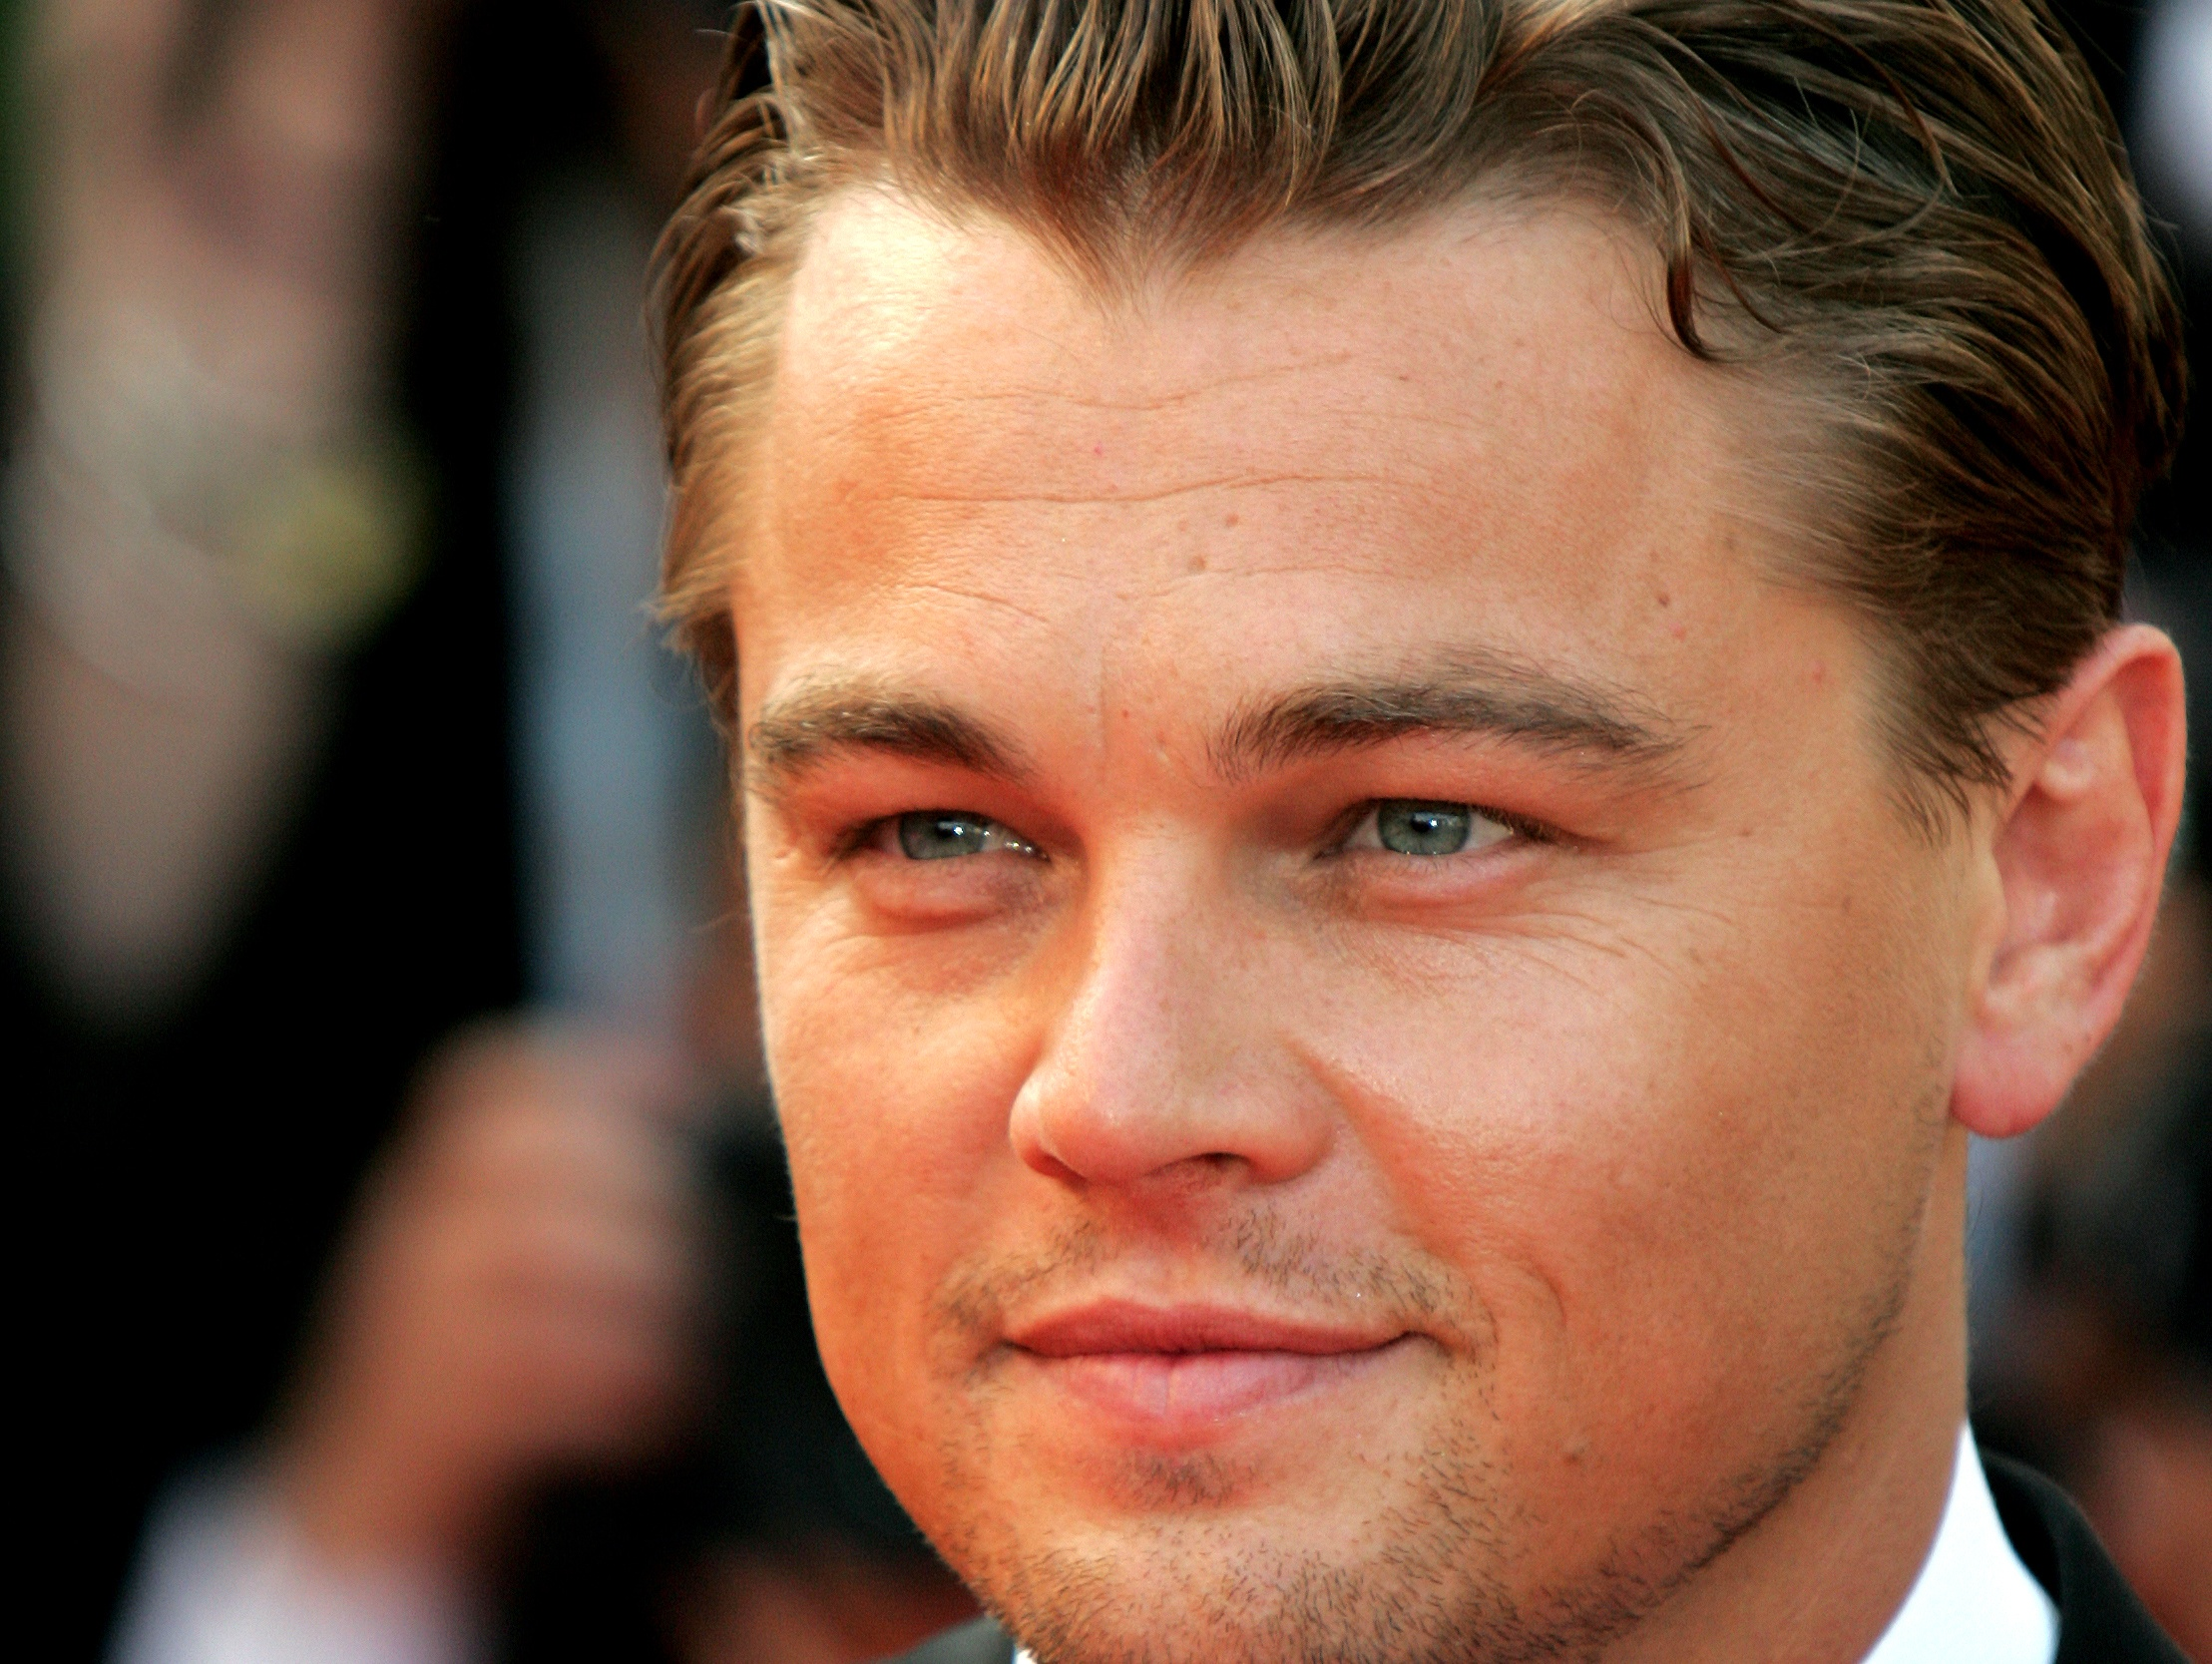 """Leonardo DiCaprio is set to star as serial killer H.H. Holmes in the film version of """"The Devil in the White City."""" (AP Photo/Kirsty Wigglesworth)"""